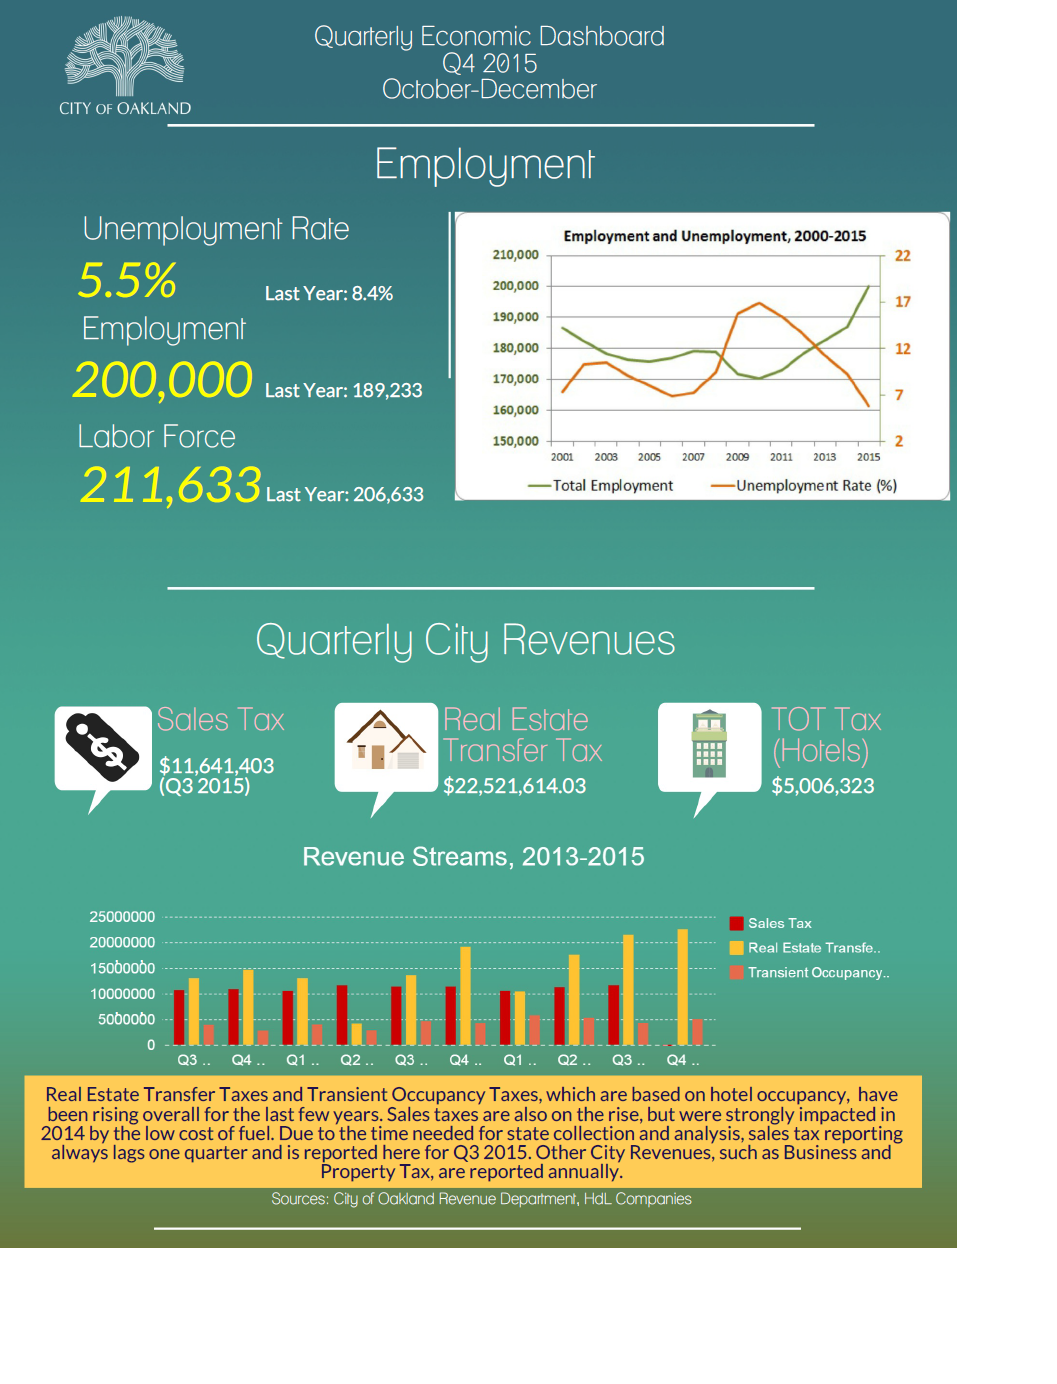 Image of Q4 2015 Economic Dashboard